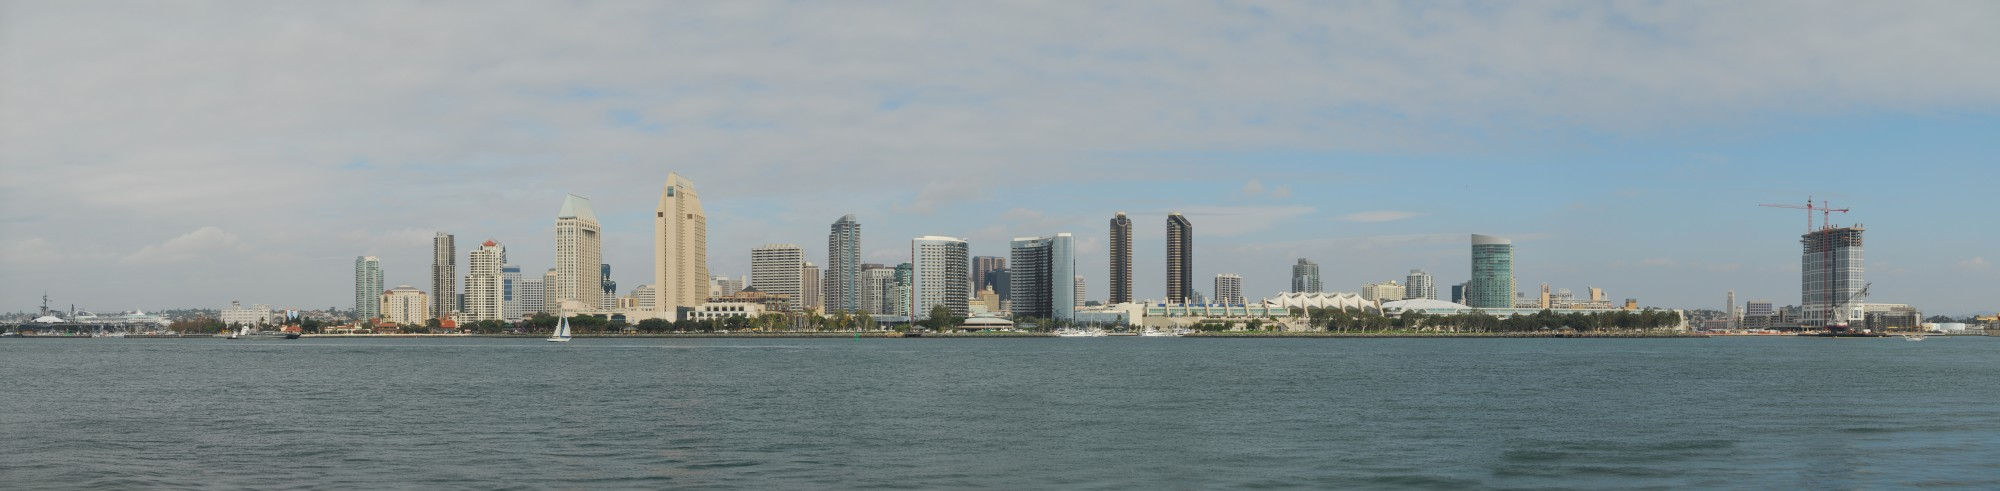 San Diego Skyline Day JD111107